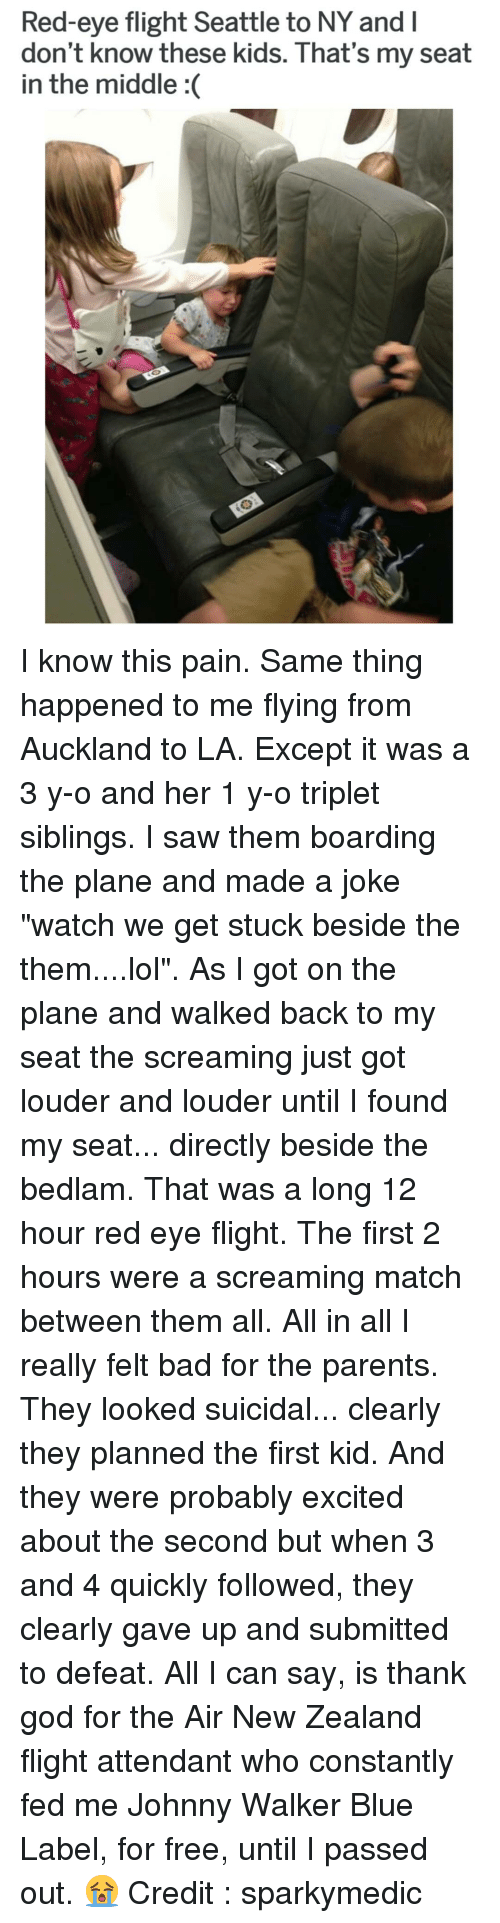 "All I Can Say Is: Red-eye flight Seattle to NY and l  don't know these kids. That's my seat  in the middle :( I know this pain. Same thing happened to me flying from Auckland to LA. Except it was a 3 y-o and her 1 y-o triplet siblings. I saw them boarding the plane and made a joke ""watch we get stuck beside the them....lol"". As I got on the plane and walked back to my seat the screaming just got louder and louder until I found my seat... directly beside the bedlam. That was a long 12 hour red eye flight. The first 2 hours were a screaming match between them all. All in all I really felt bad for the parents. They looked suicidal... clearly they planned the first kid. And they were probably excited about the second but when 3 and 4 quickly followed, they clearly gave up and submitted to defeat. All I can say, is thank god for the Air New Zealand flight attendant who constantly fed me Johnny Walker Blue Label, for free, until I passed out. 😭 Credit : sparkymedic"